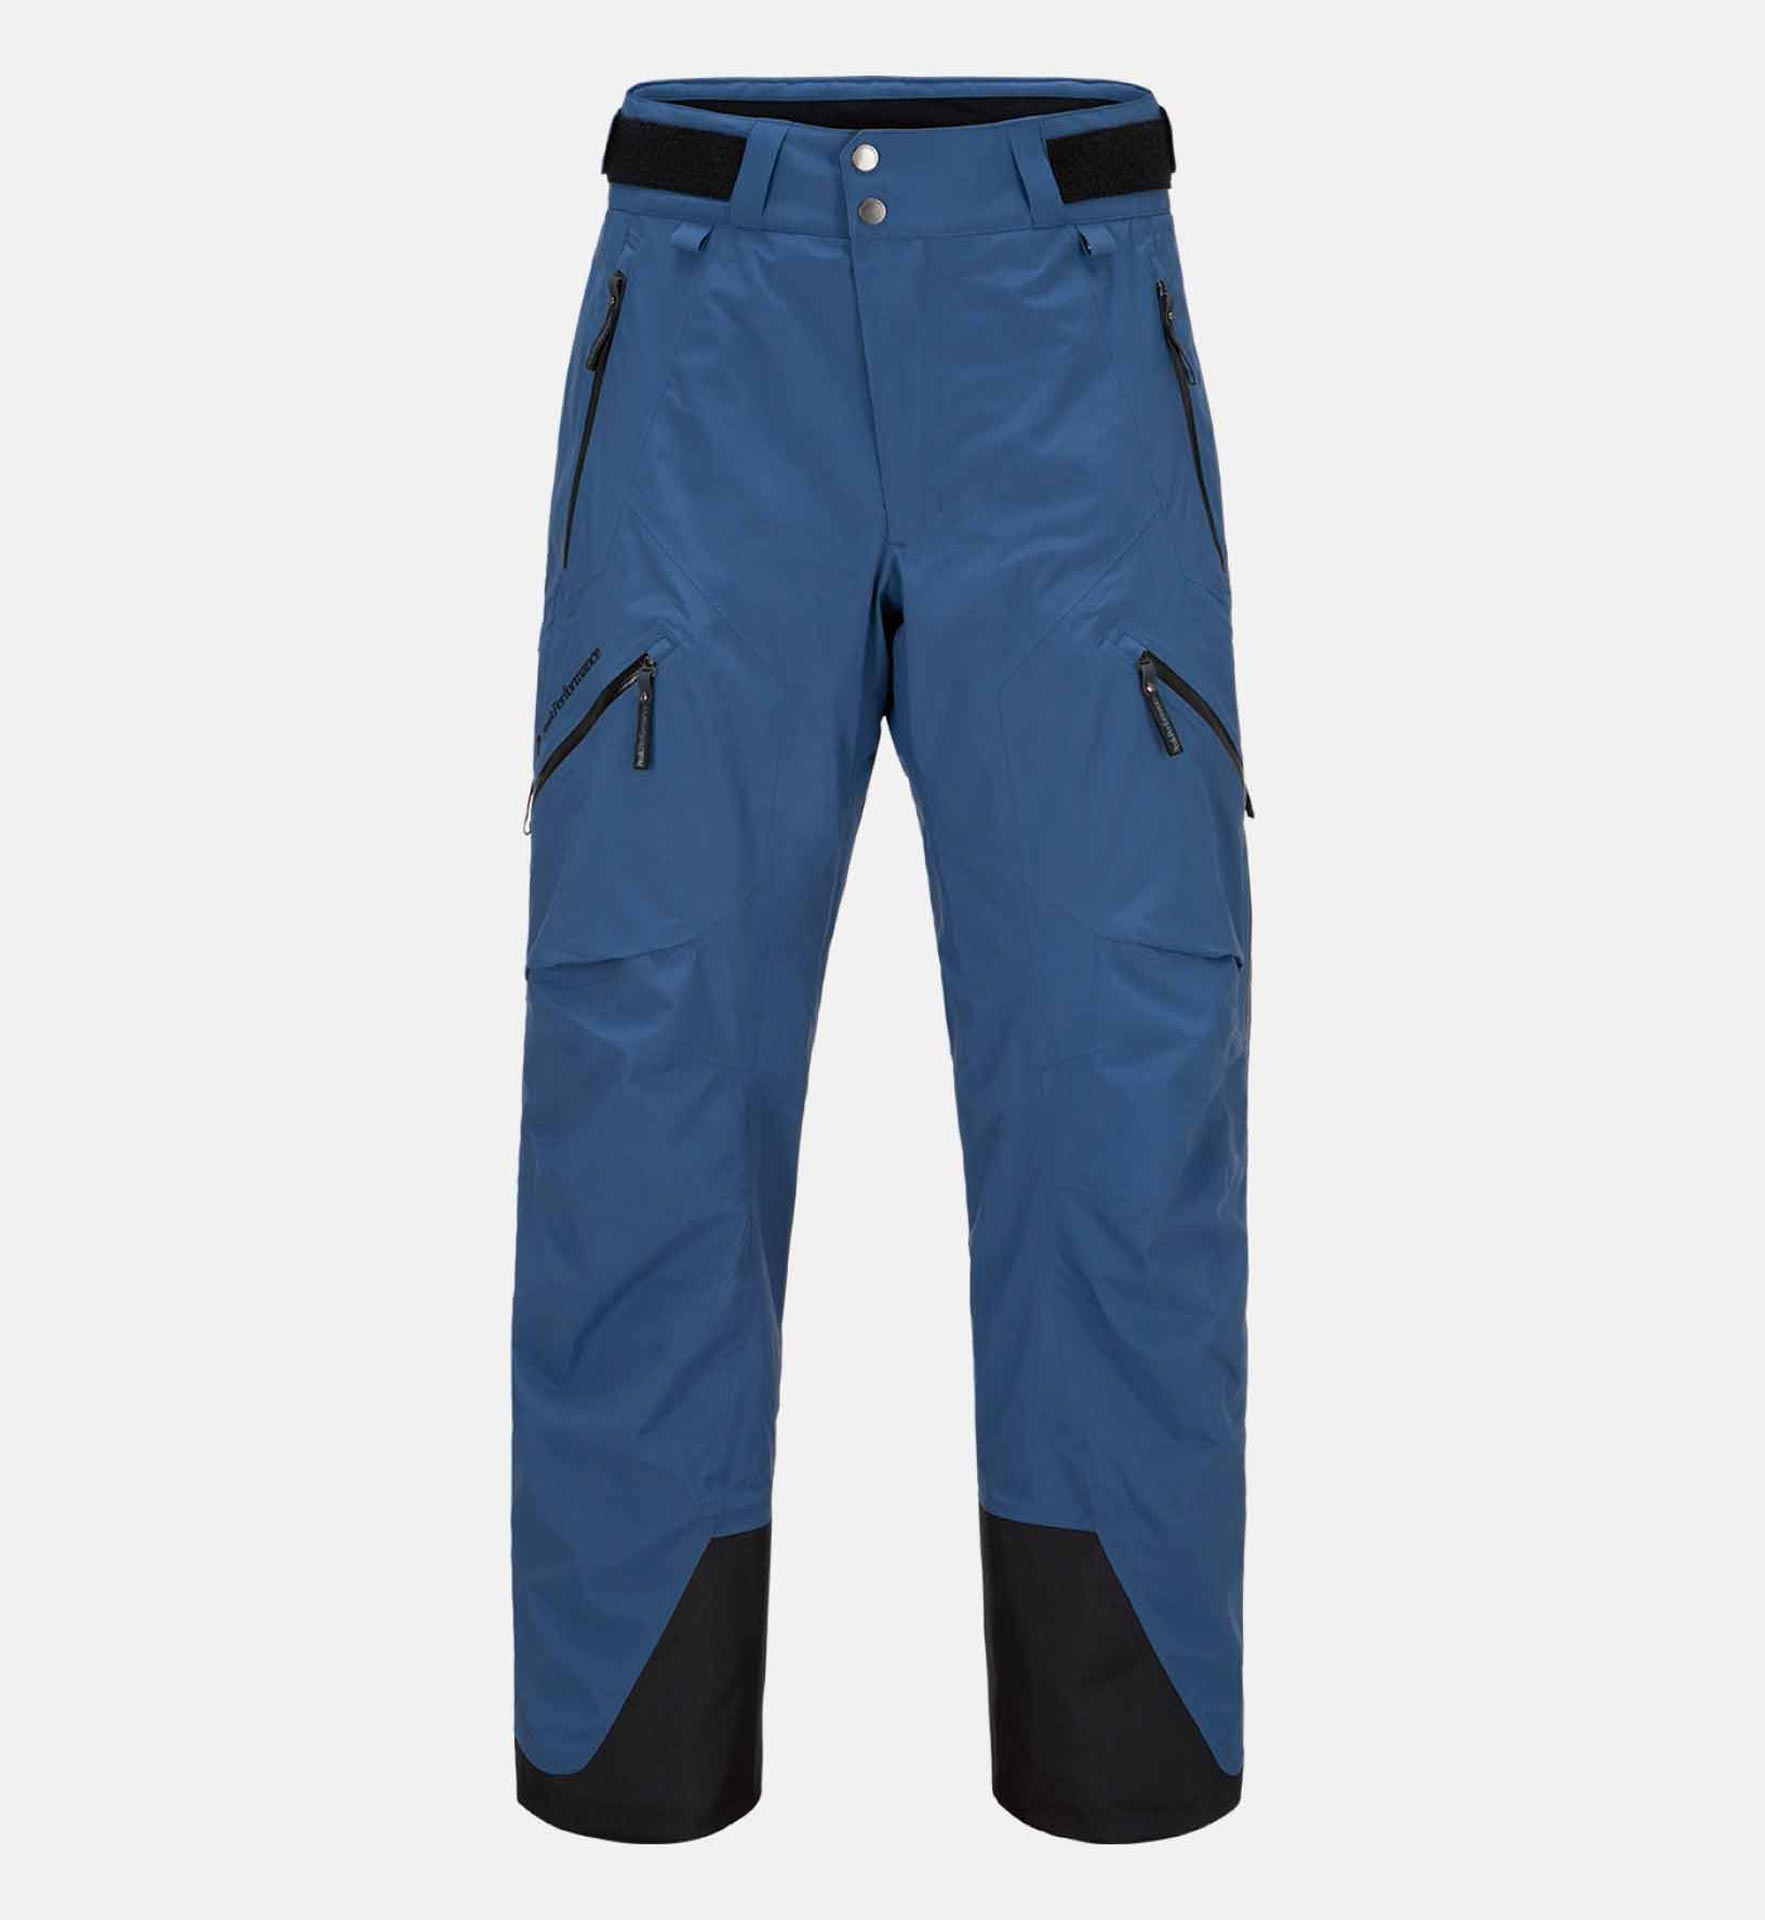 Peak Performance: Heli Vertical Pants